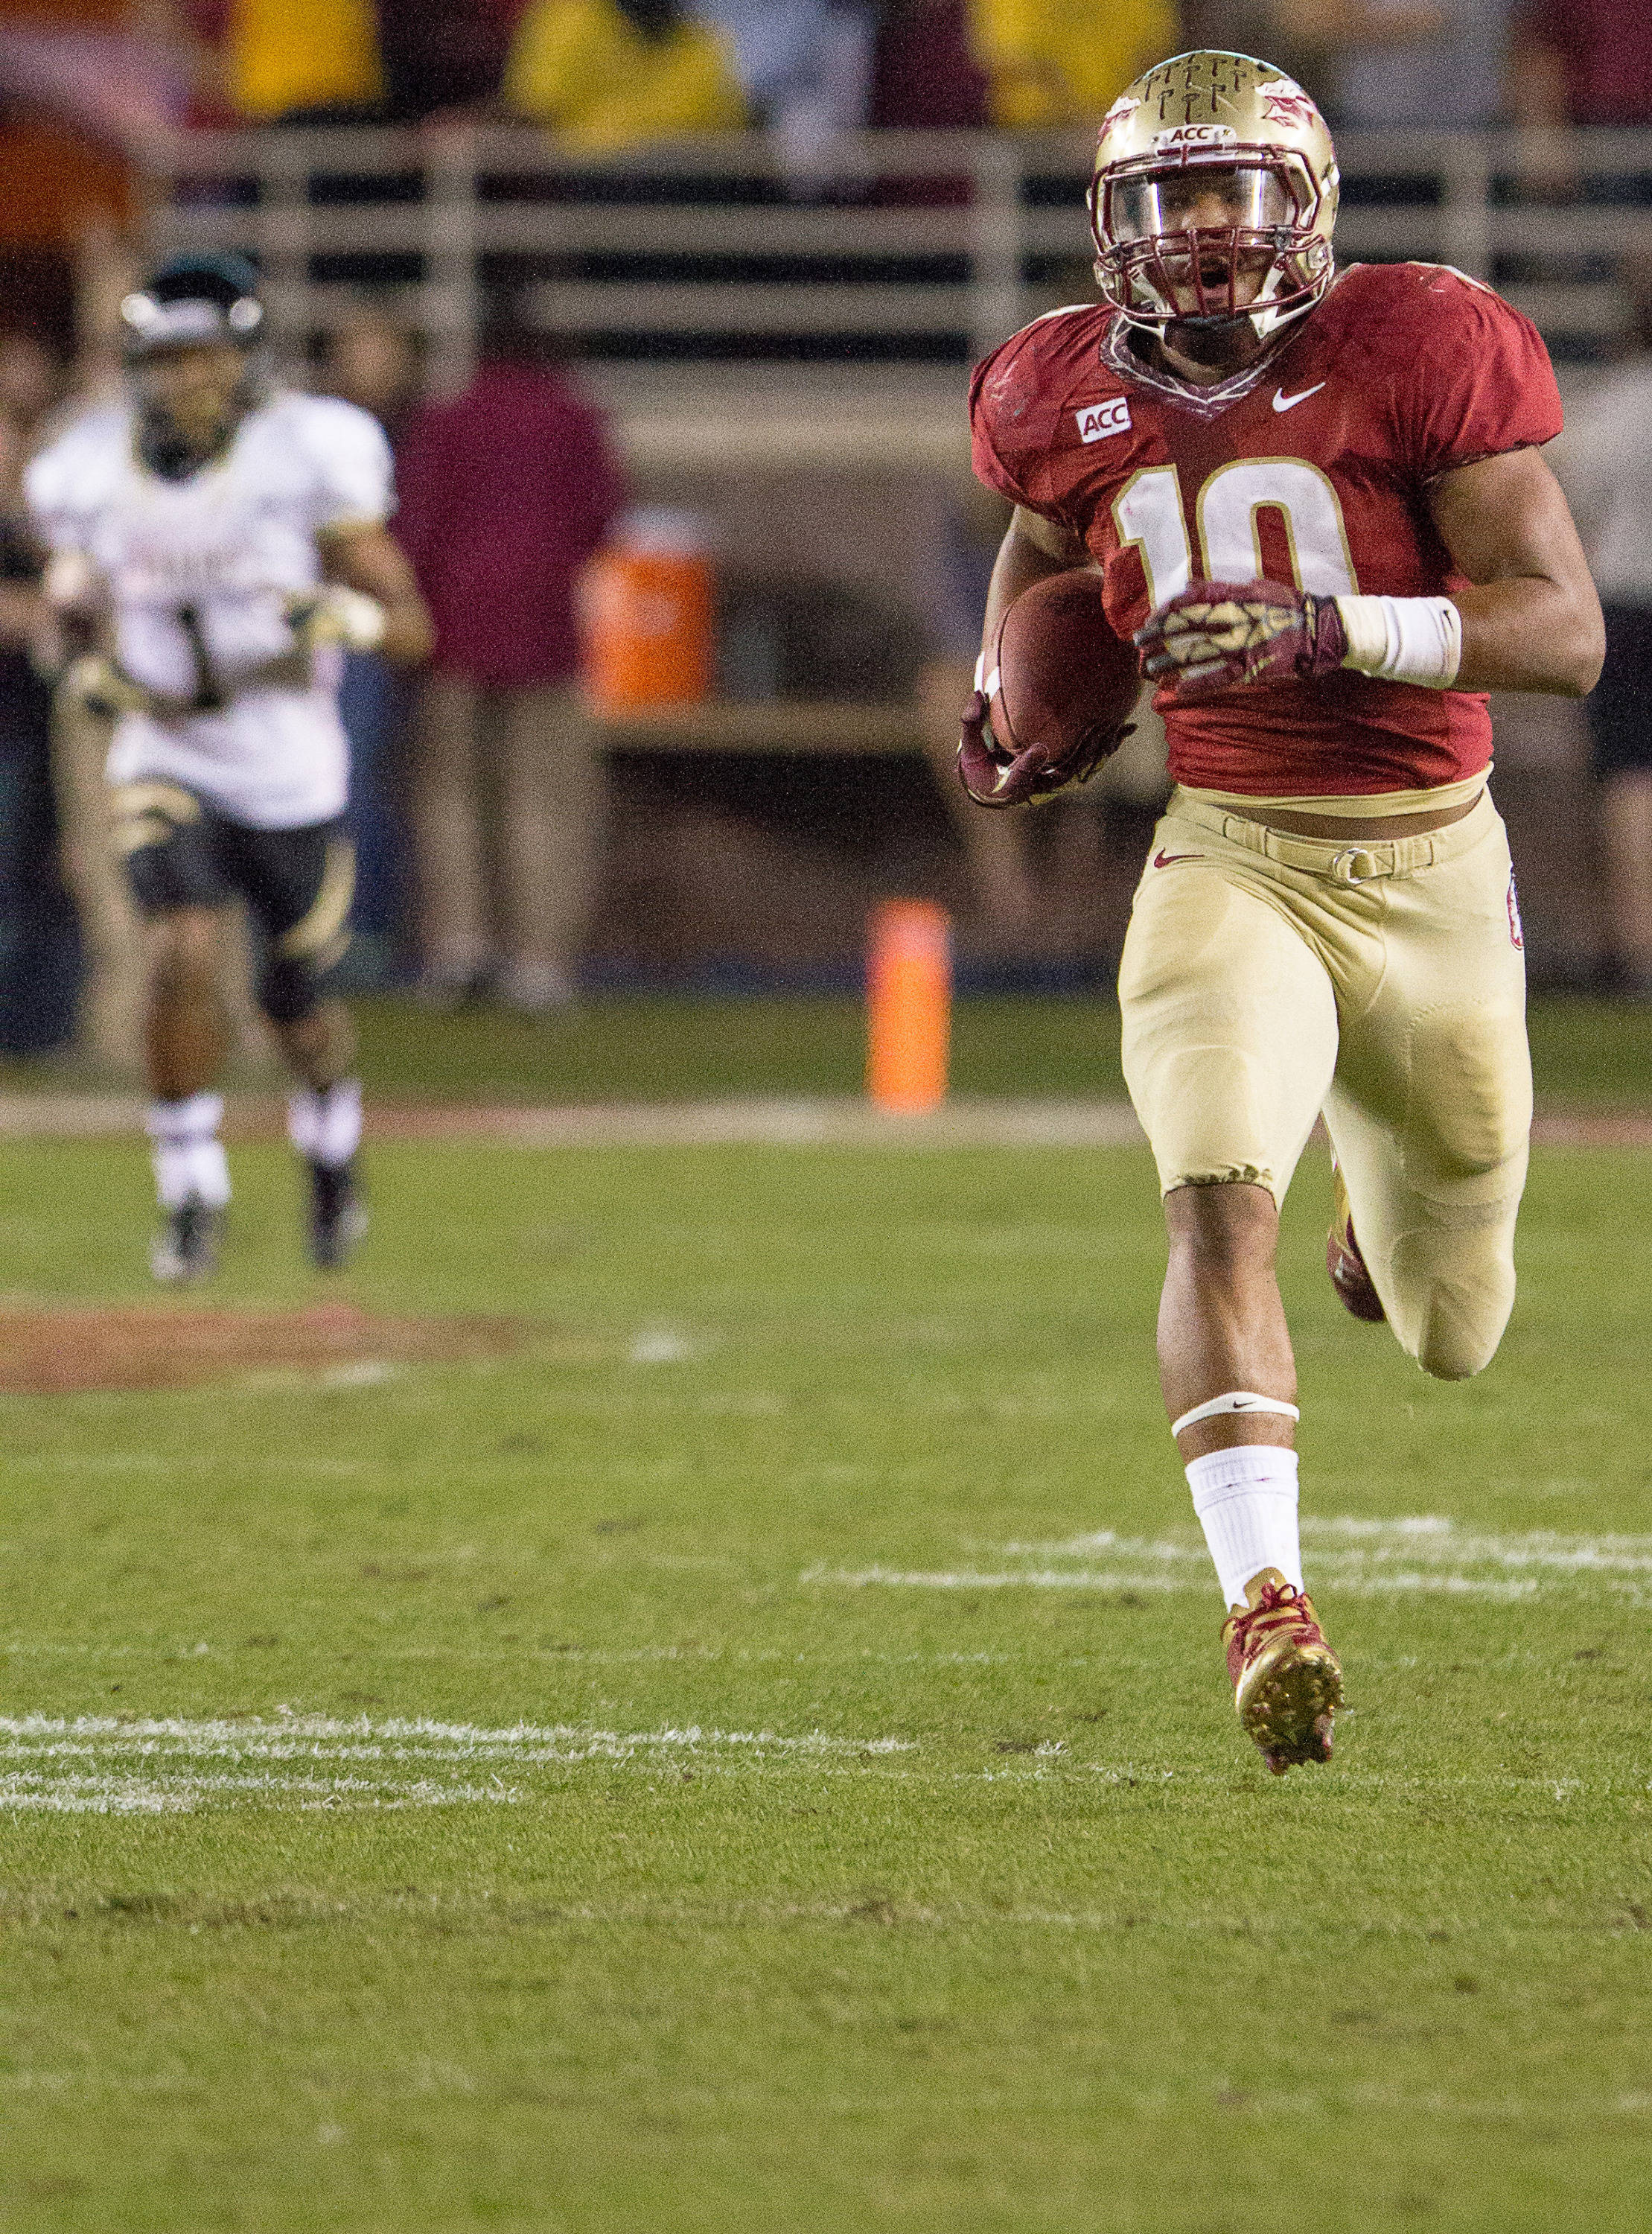 E.J. Levenberry (10) leaves a defender far behind him during FSU Football's 80-14 victory over Idaho in Tallahassee, Fla on Saturday, November 23, 2013. Photos by Mike Schwarz.